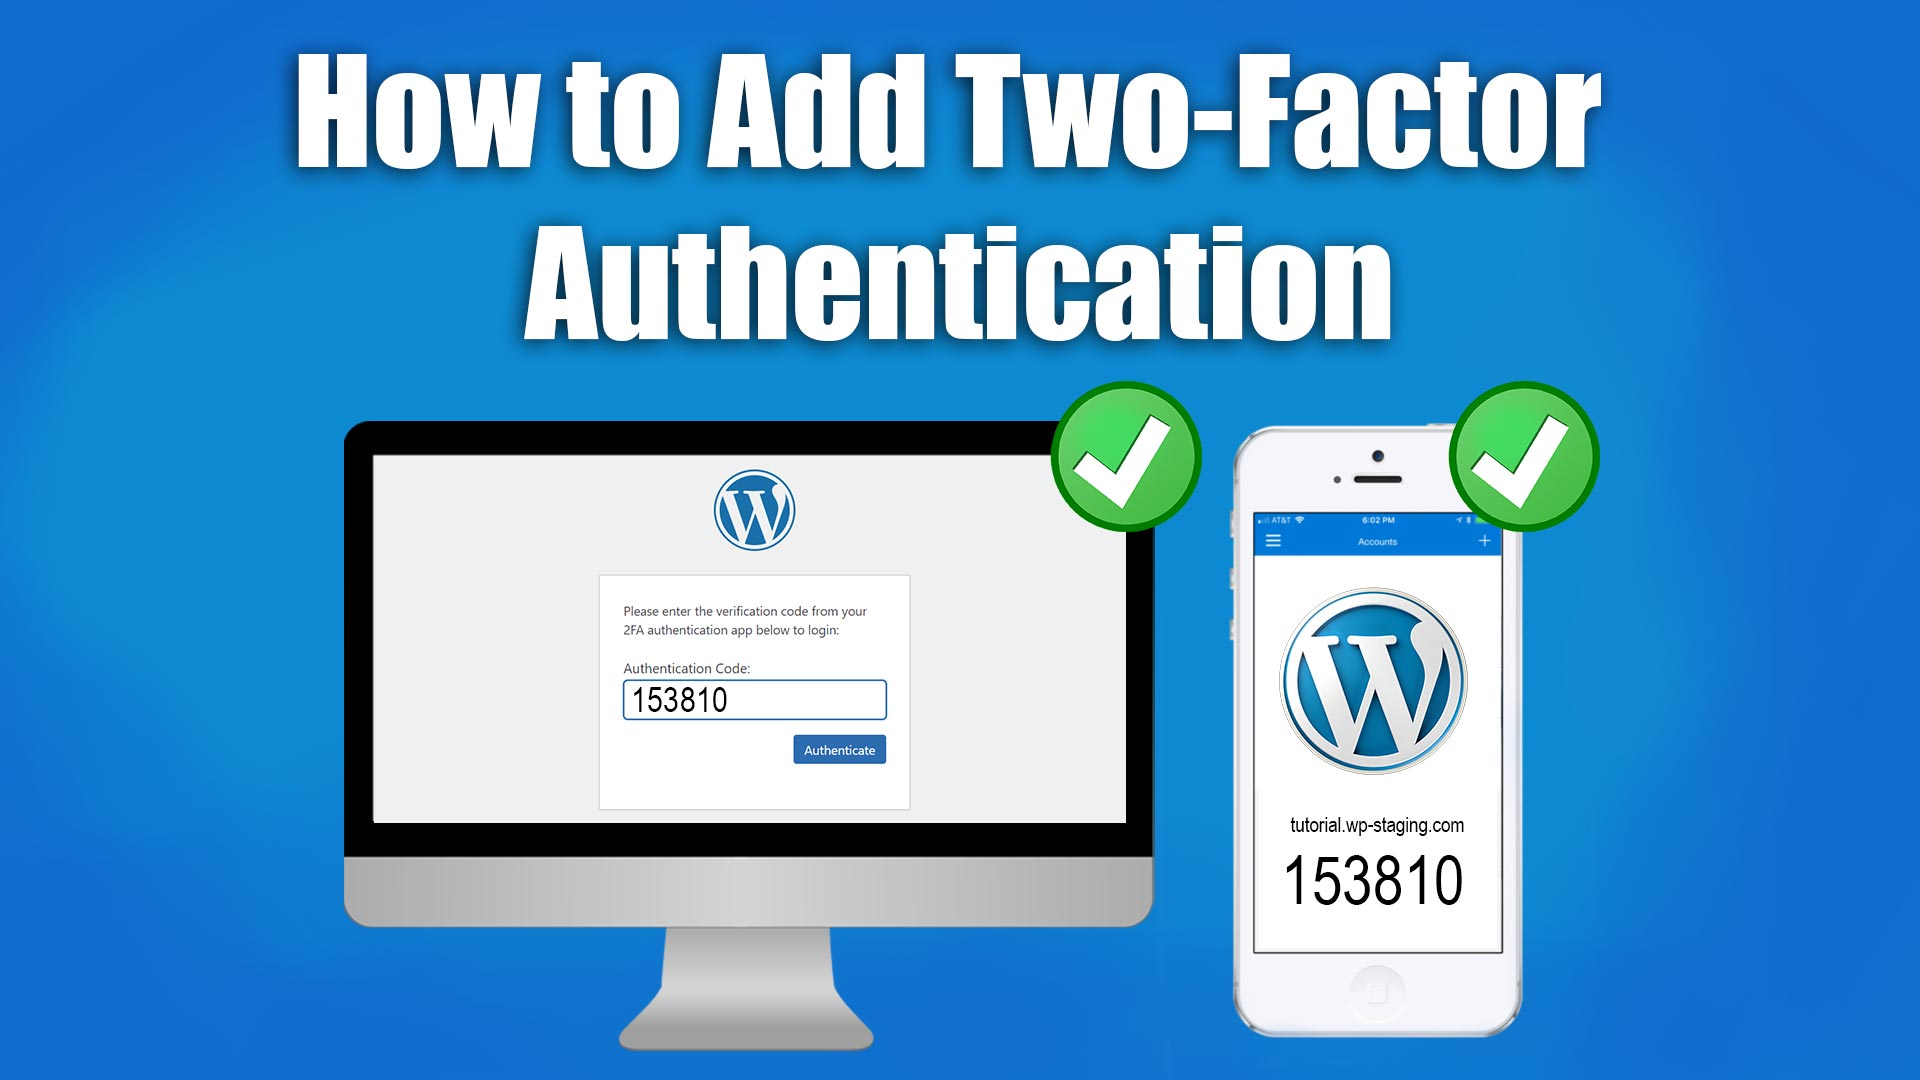 Picture: Two Factor Authentication